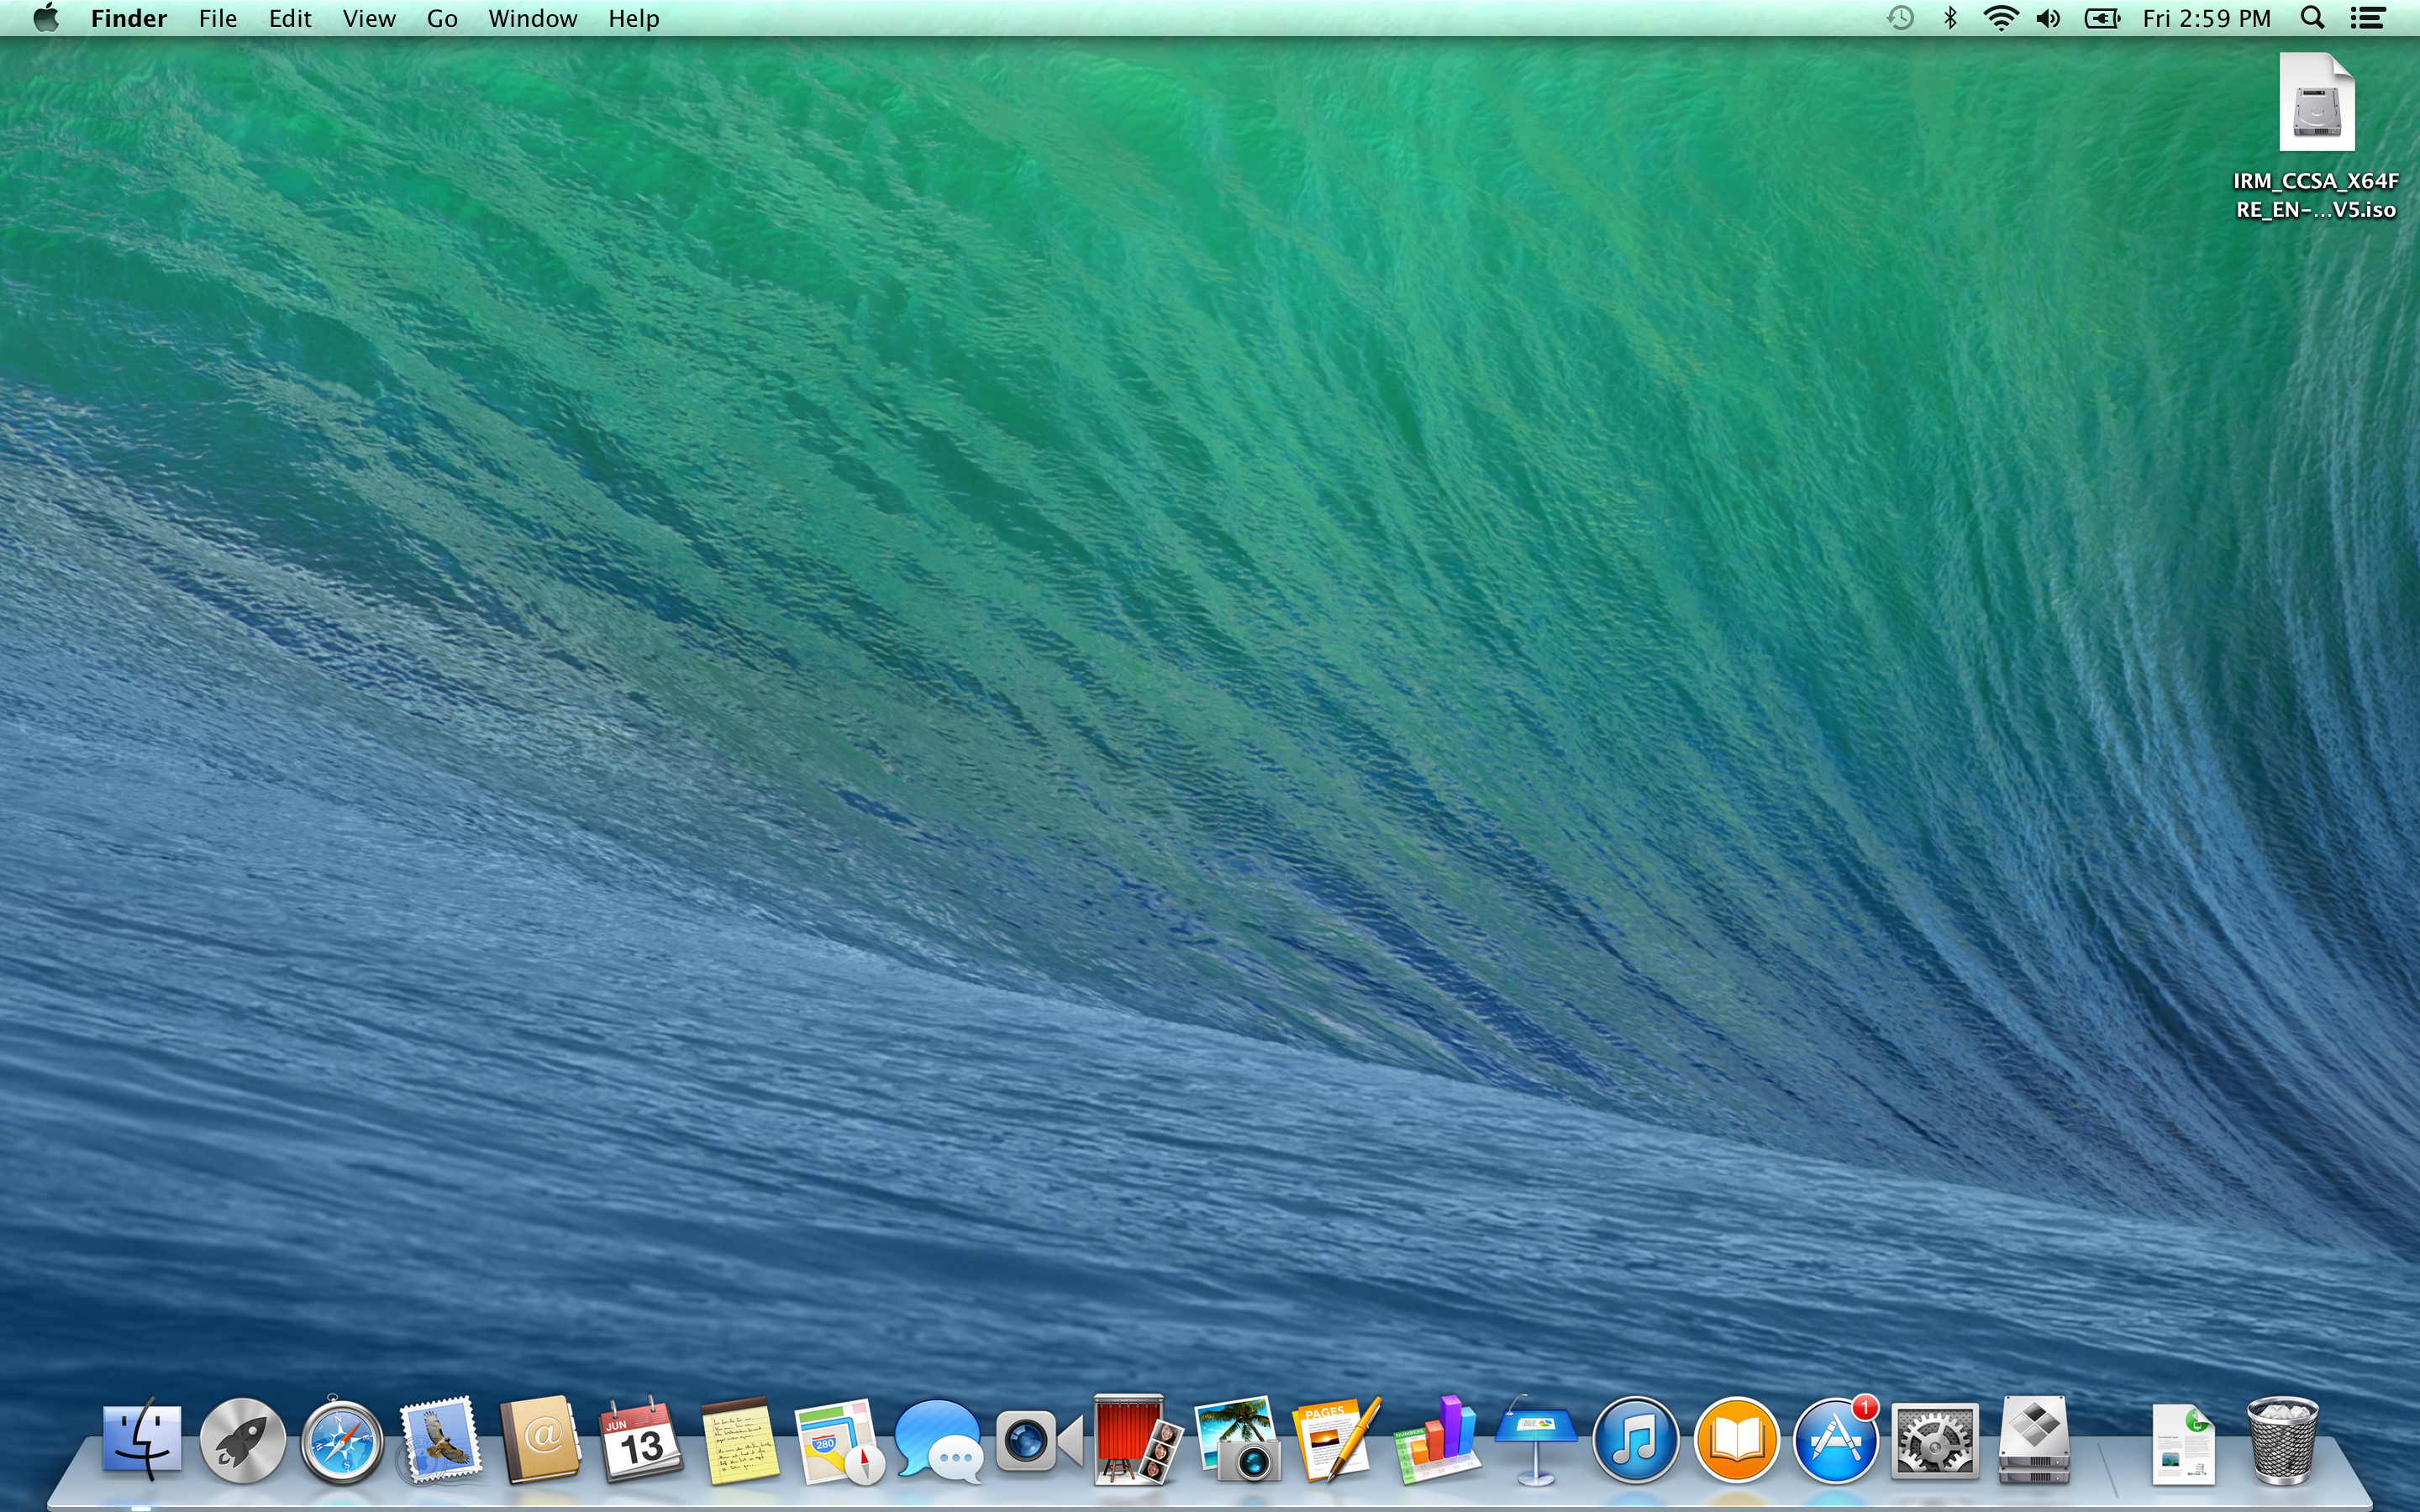 A screenshot of the Apple MacBook Pro with Retina Display's desktop.